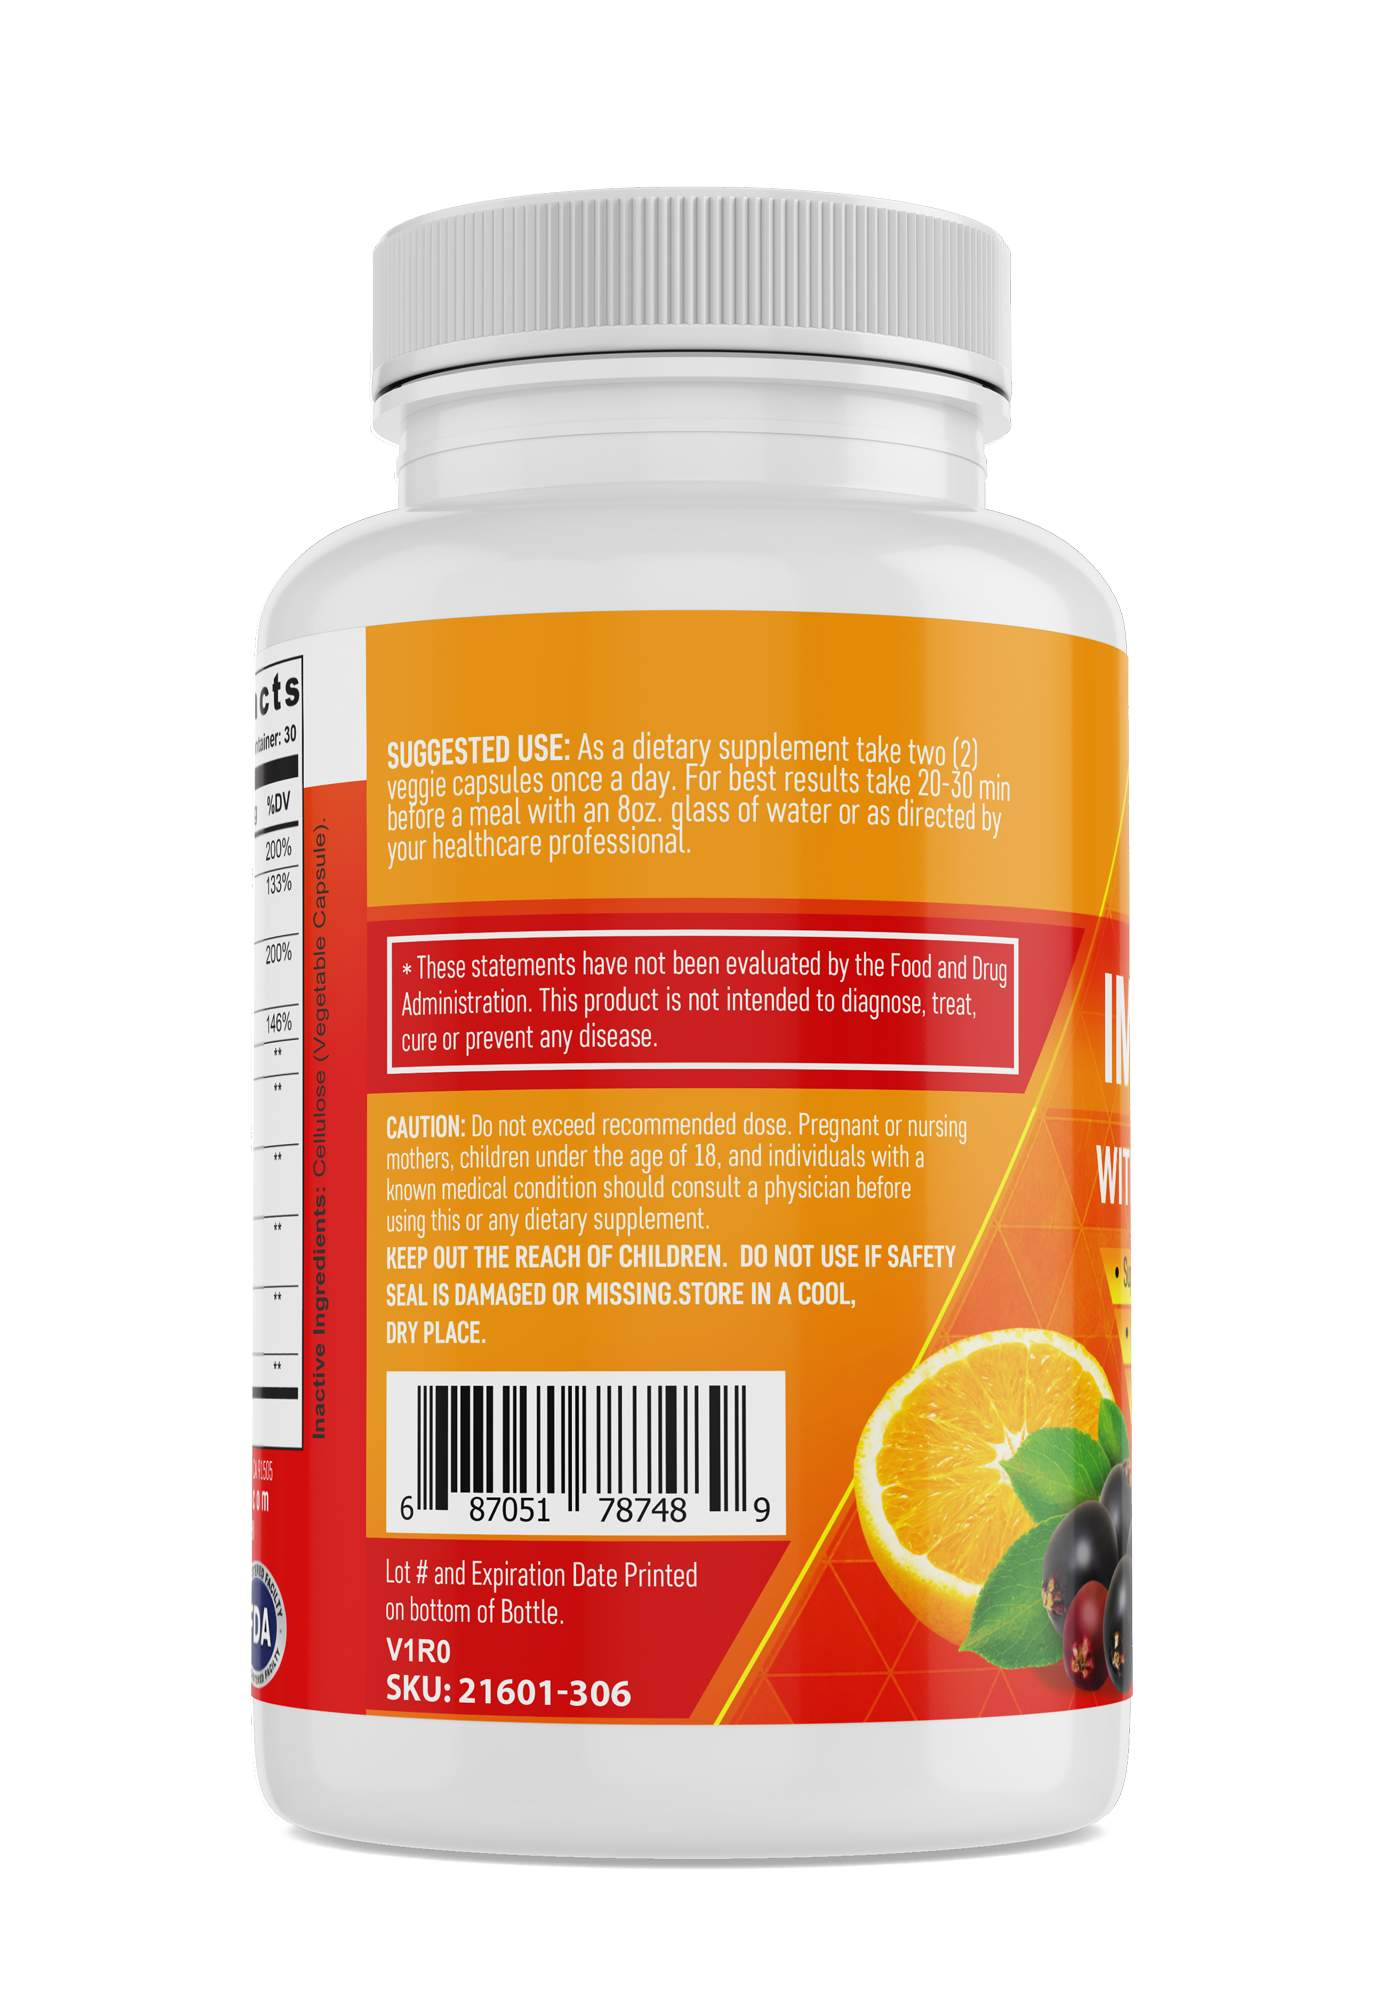 (2 Bottles) - Immune Support with Elderberry and Vitamin C - Packed with Powerful Antioxidants